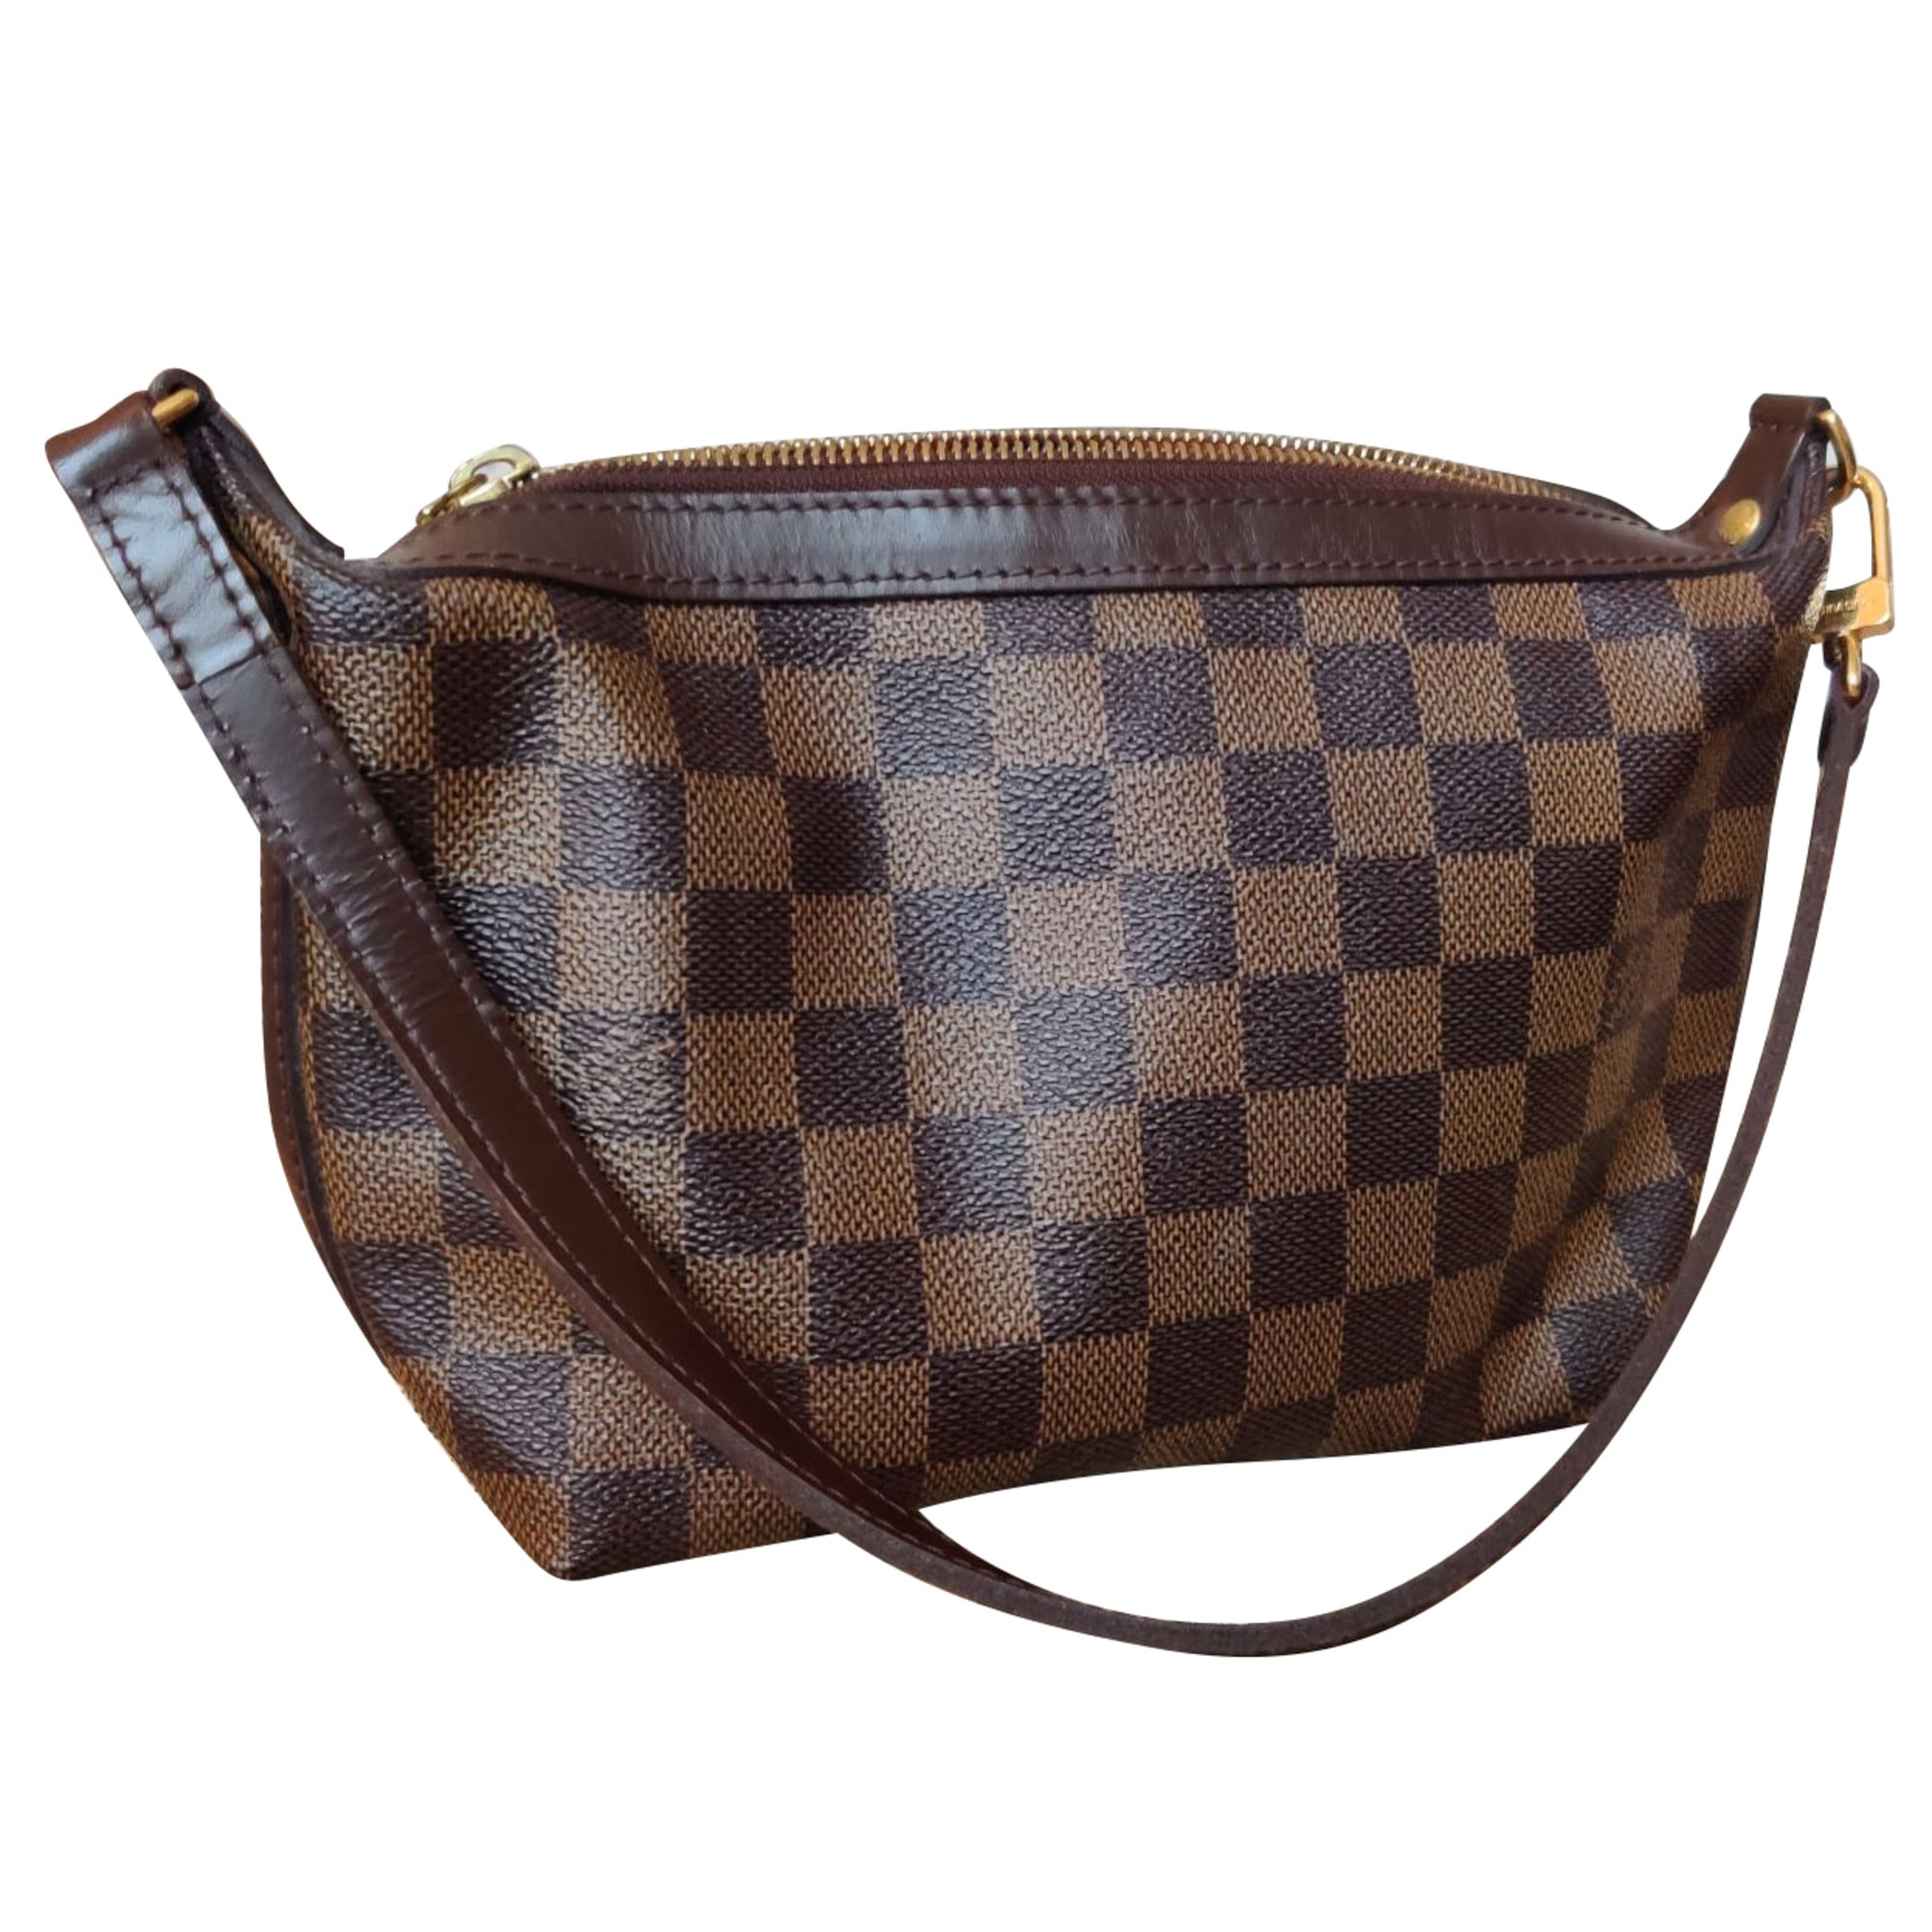 Leather Shoulder Bag LOUIS VUITTON Brown